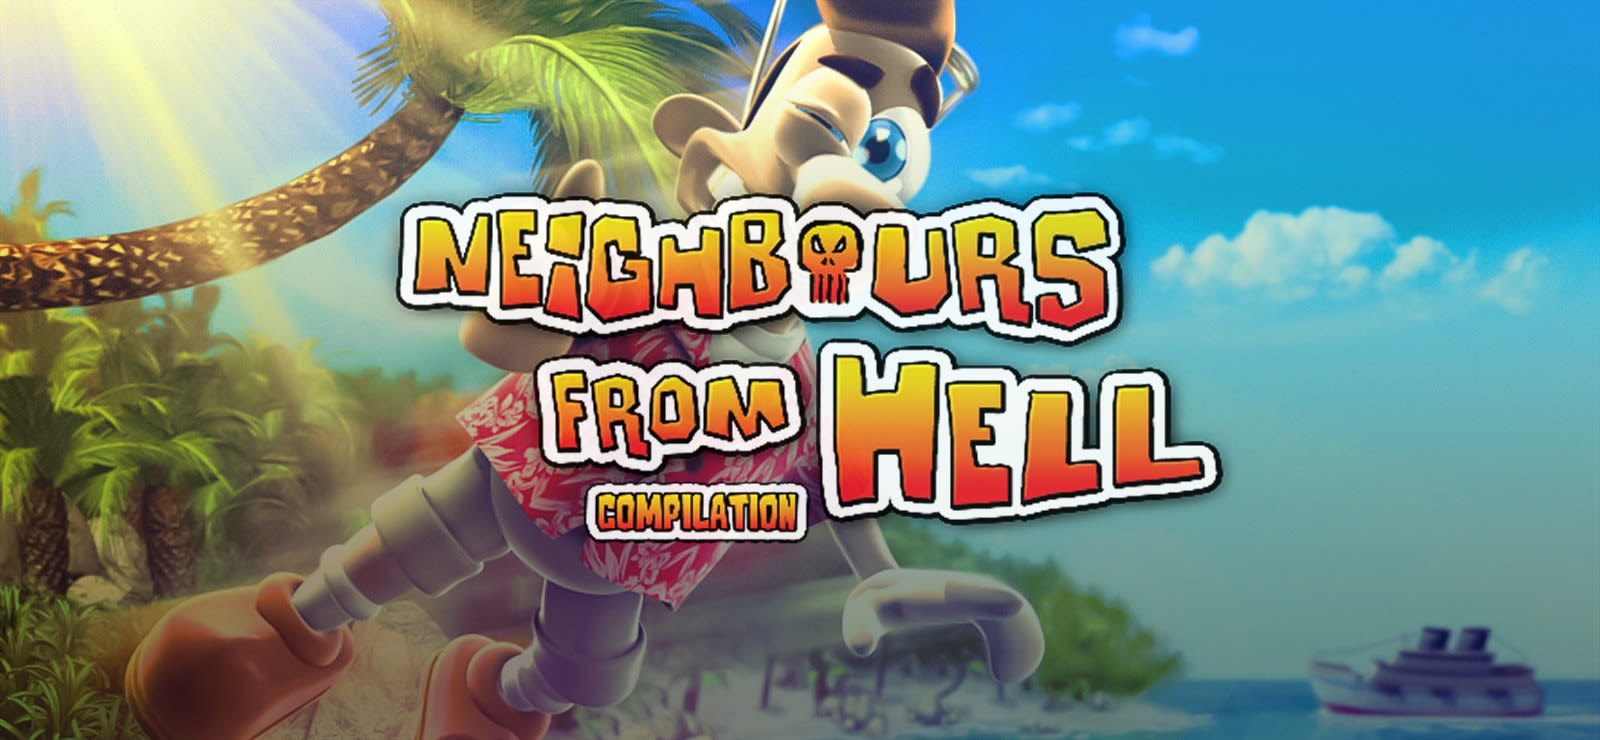 Neighbours From Hell Compilation varies-with-device